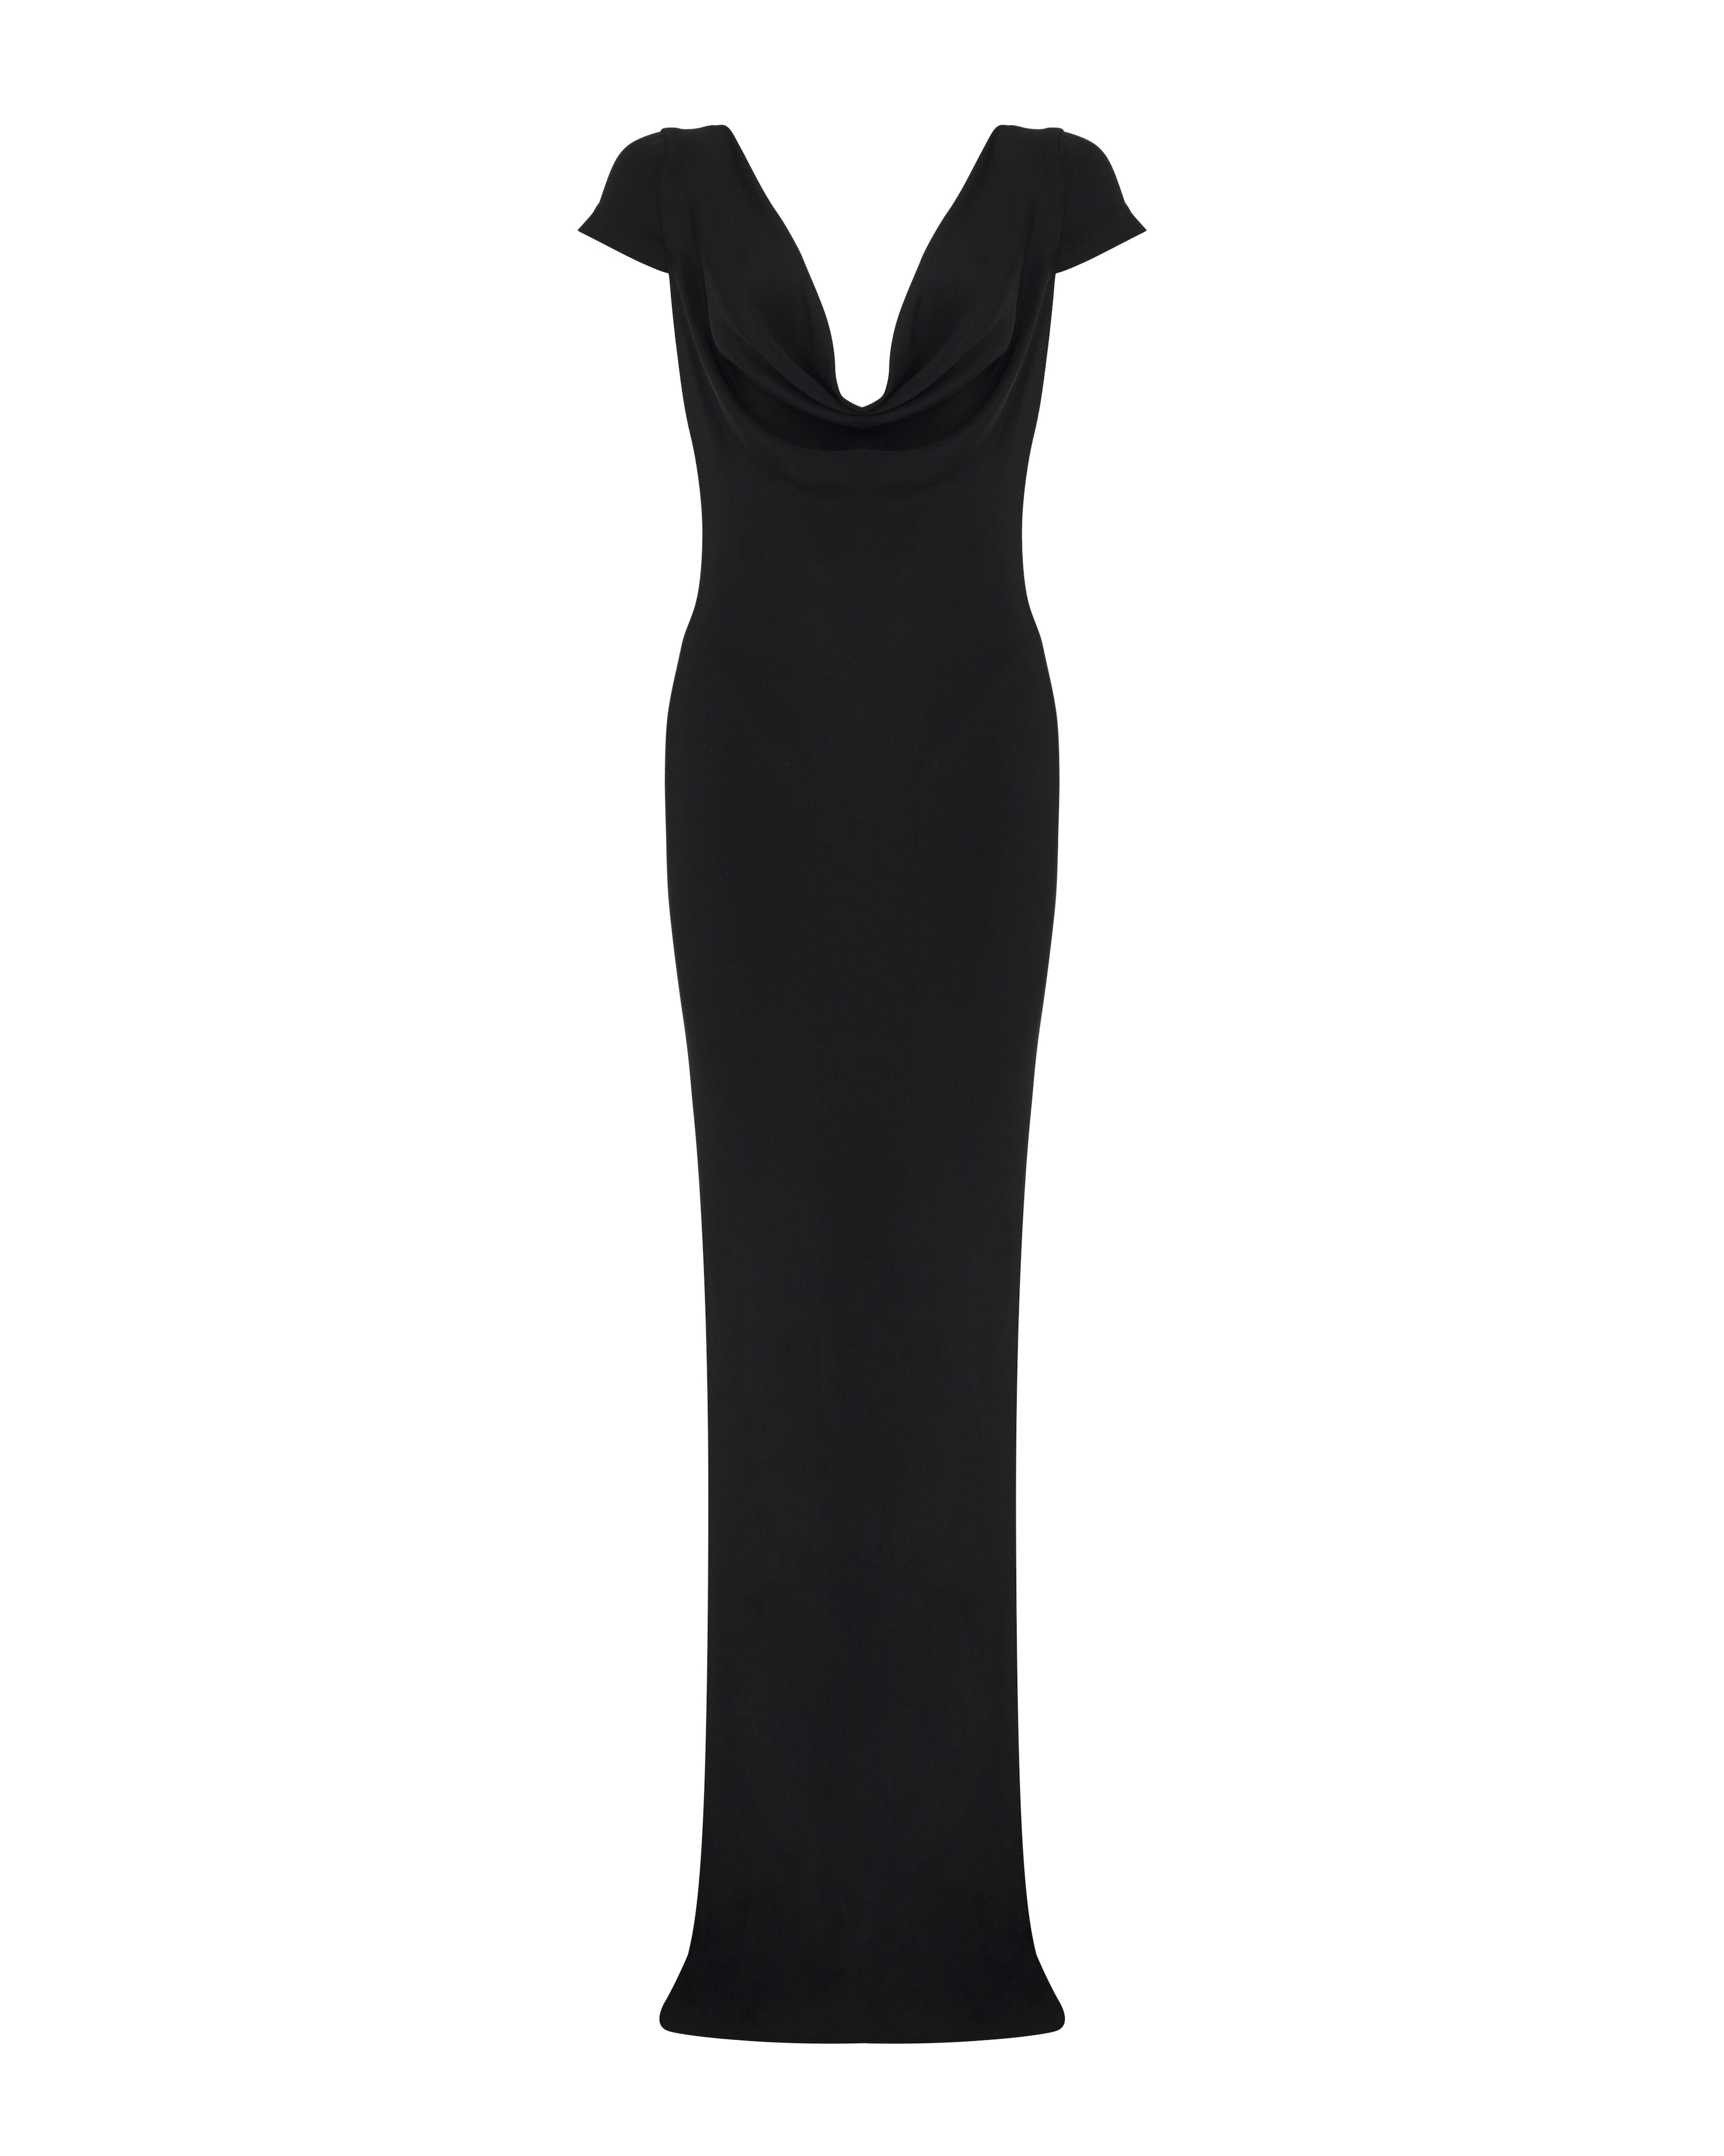 Capsleeve Gown - Black